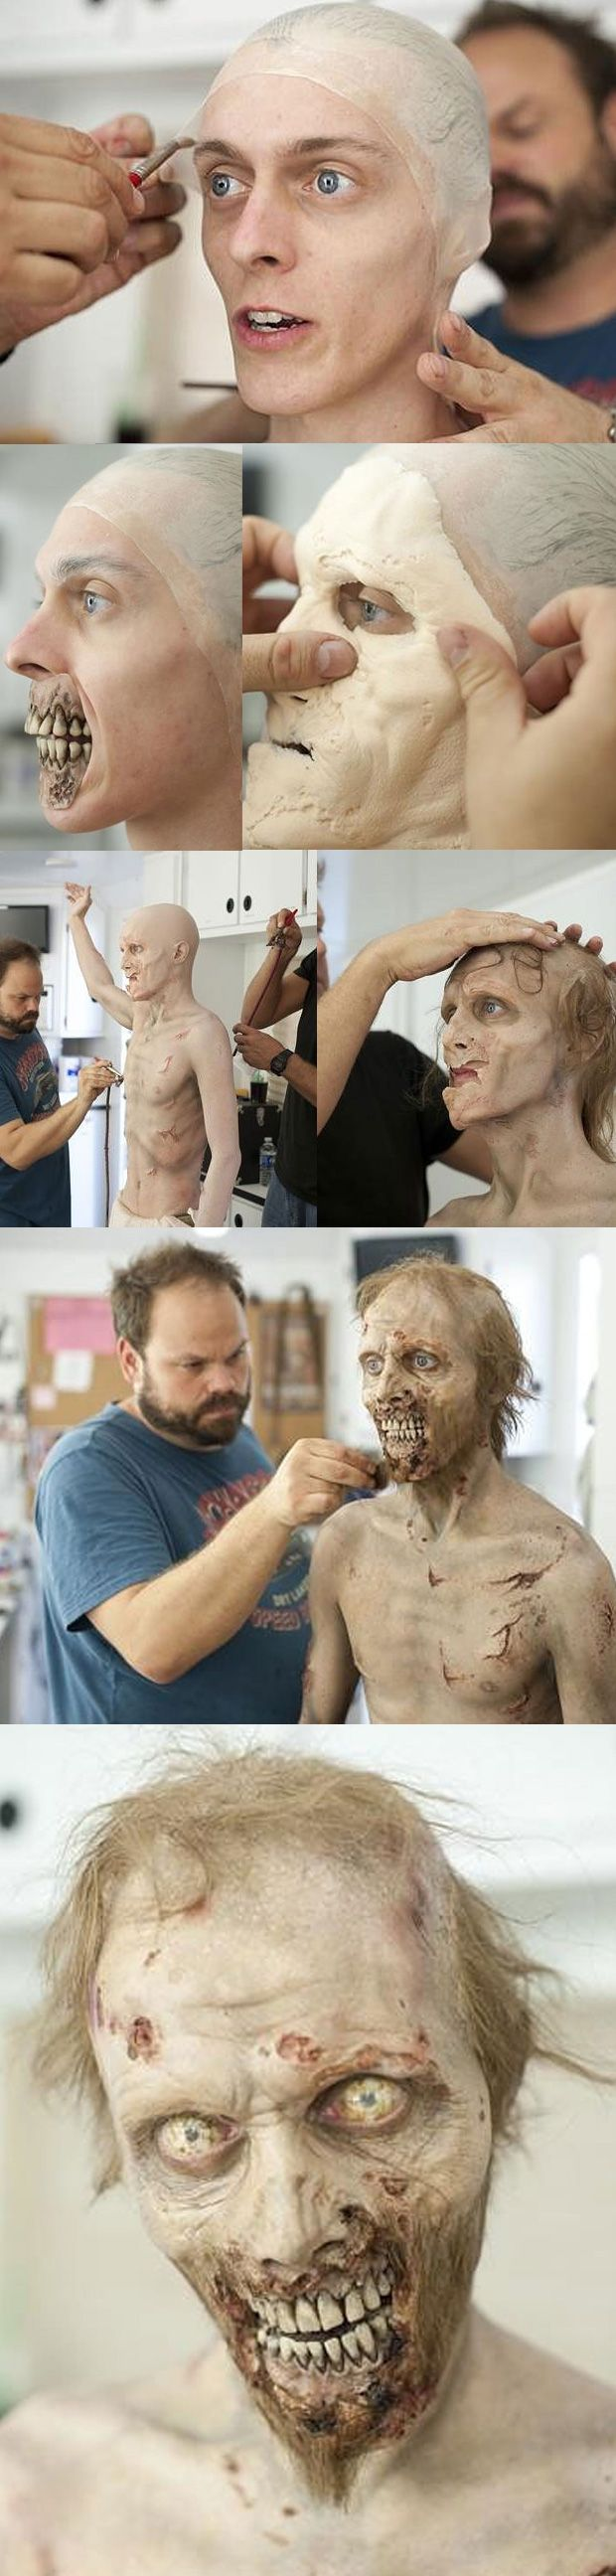 Zombie Costume | Make Up- Wow! I would be a little shocked to see this! Realistic!